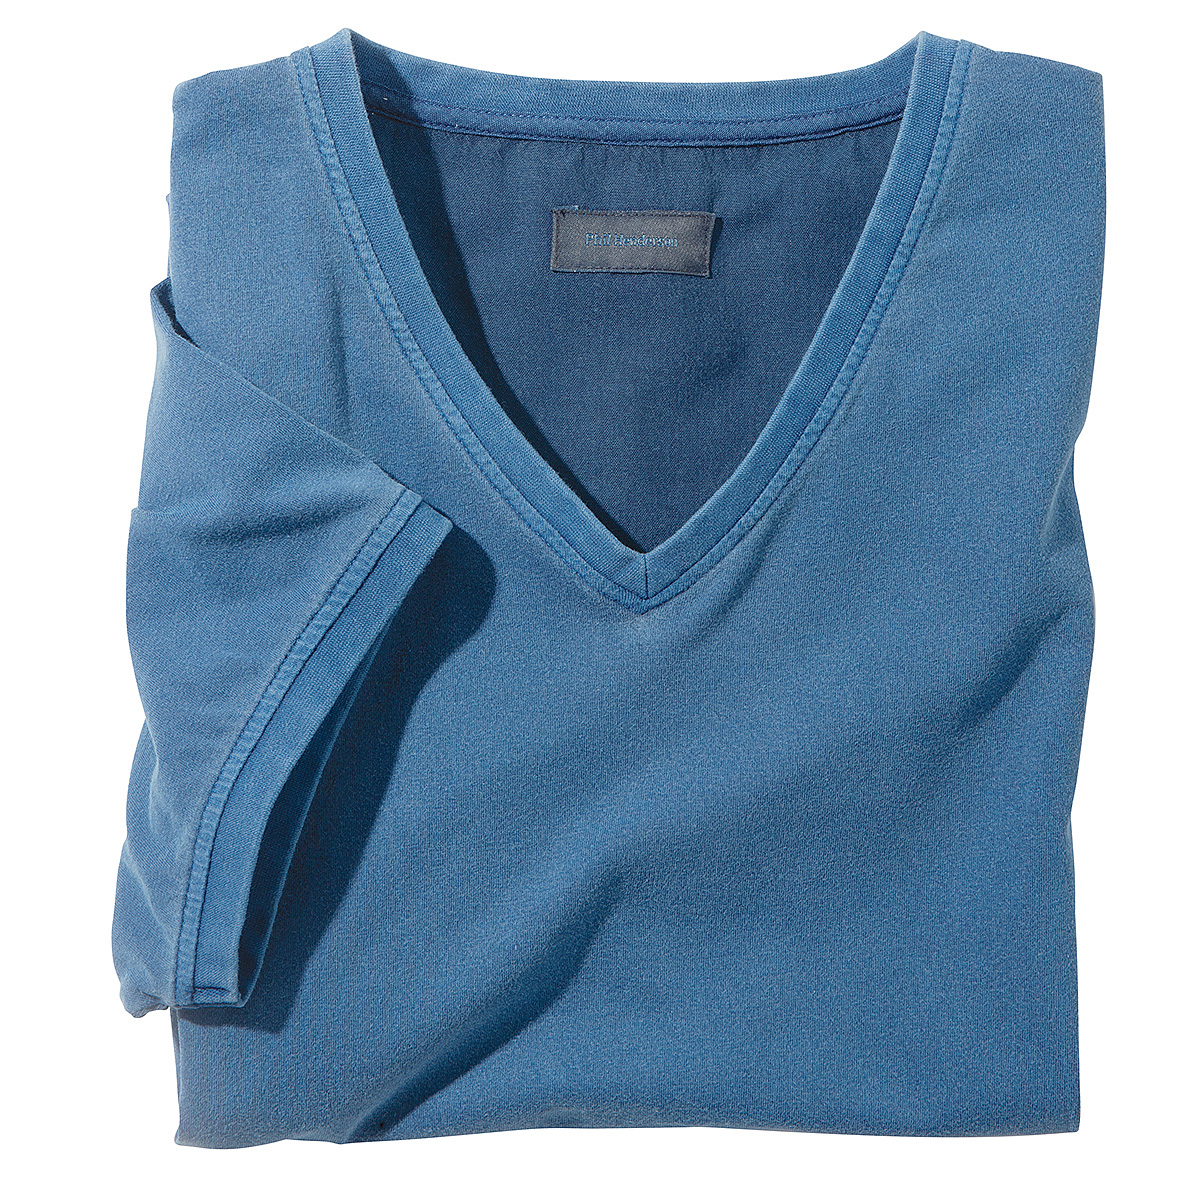 kimmich t shirt mit v ausschnitt farbe blau gr enspezialist m nnermode. Black Bedroom Furniture Sets. Home Design Ideas